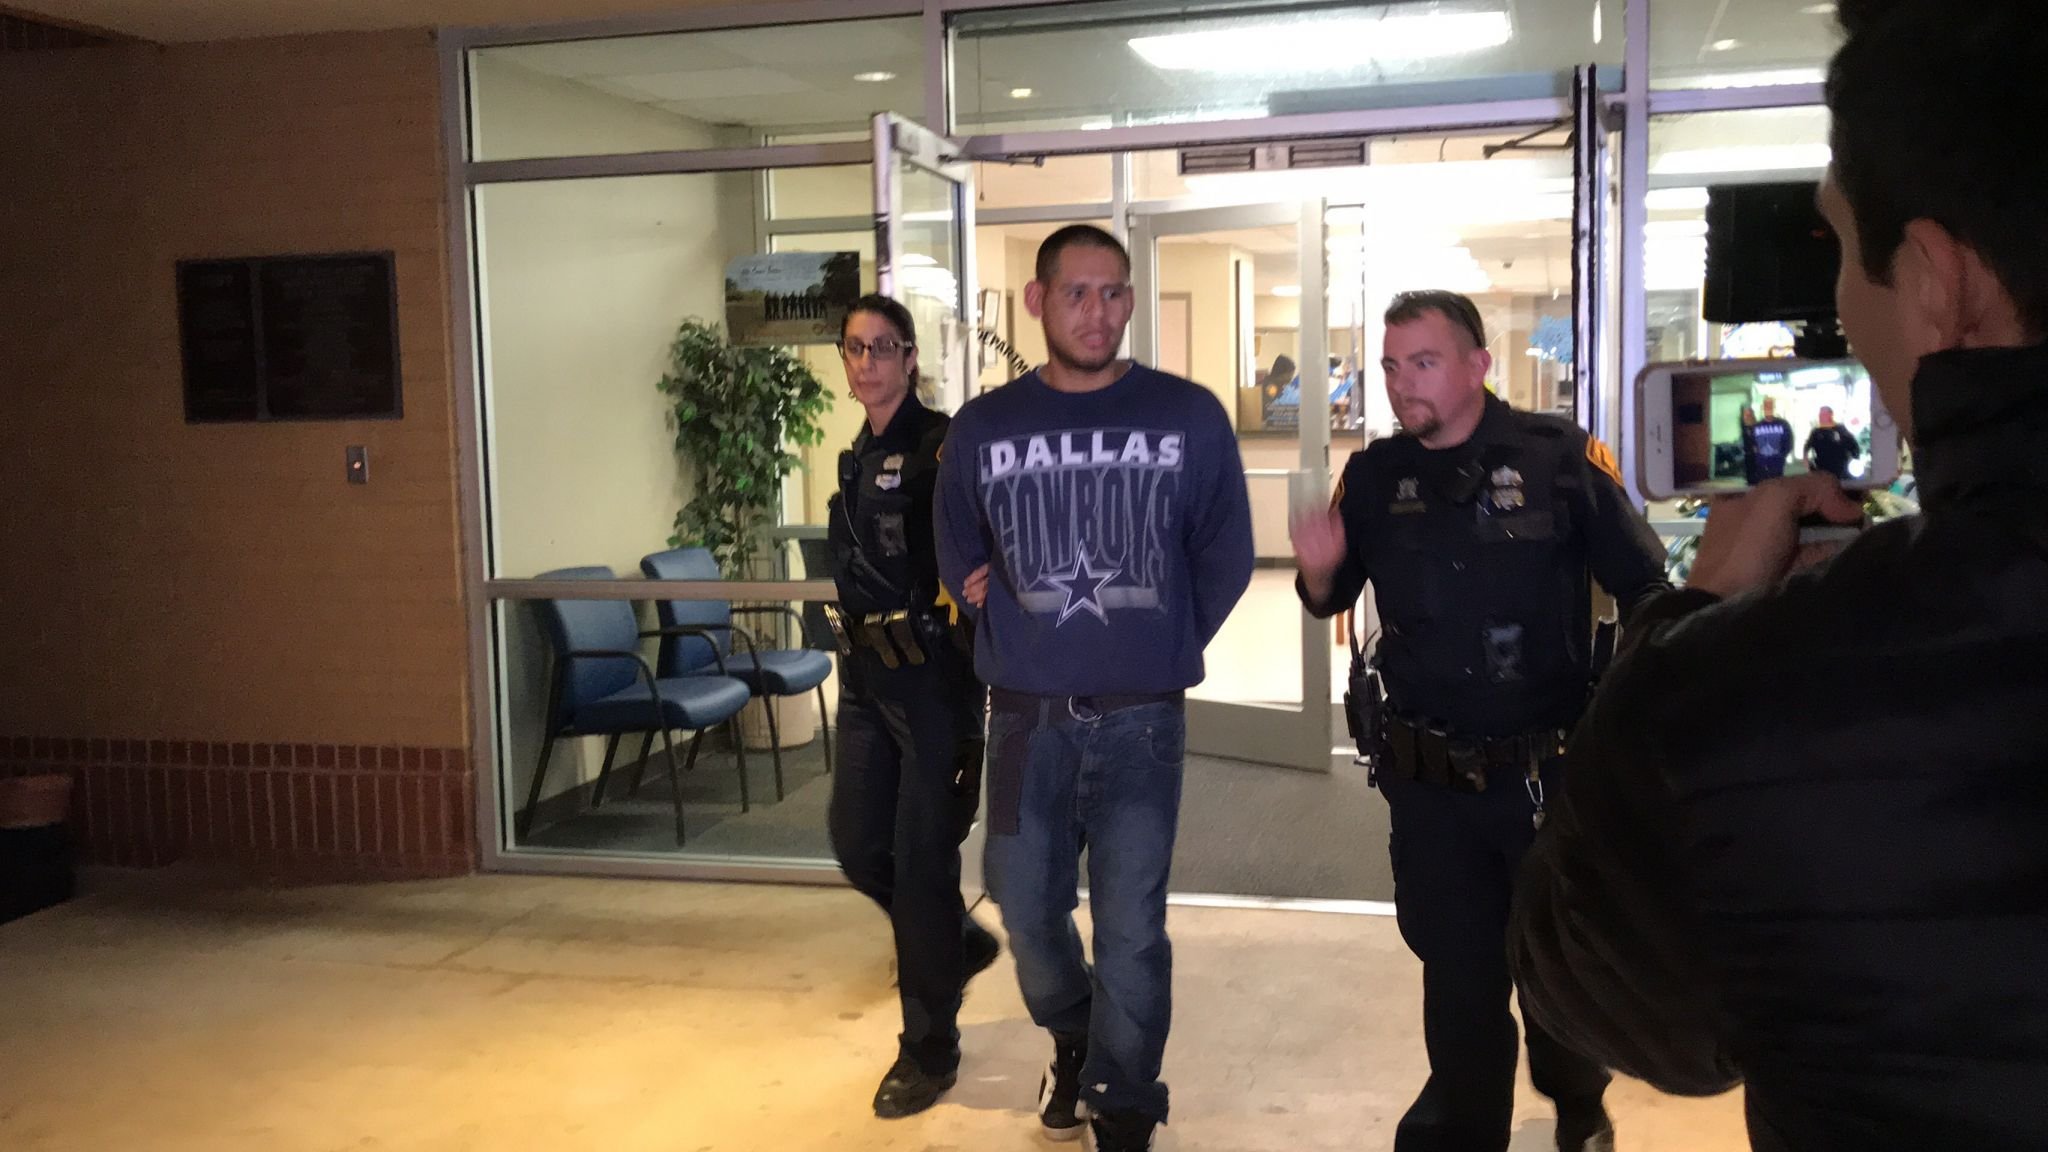 Man accused in string of package thefts arrested